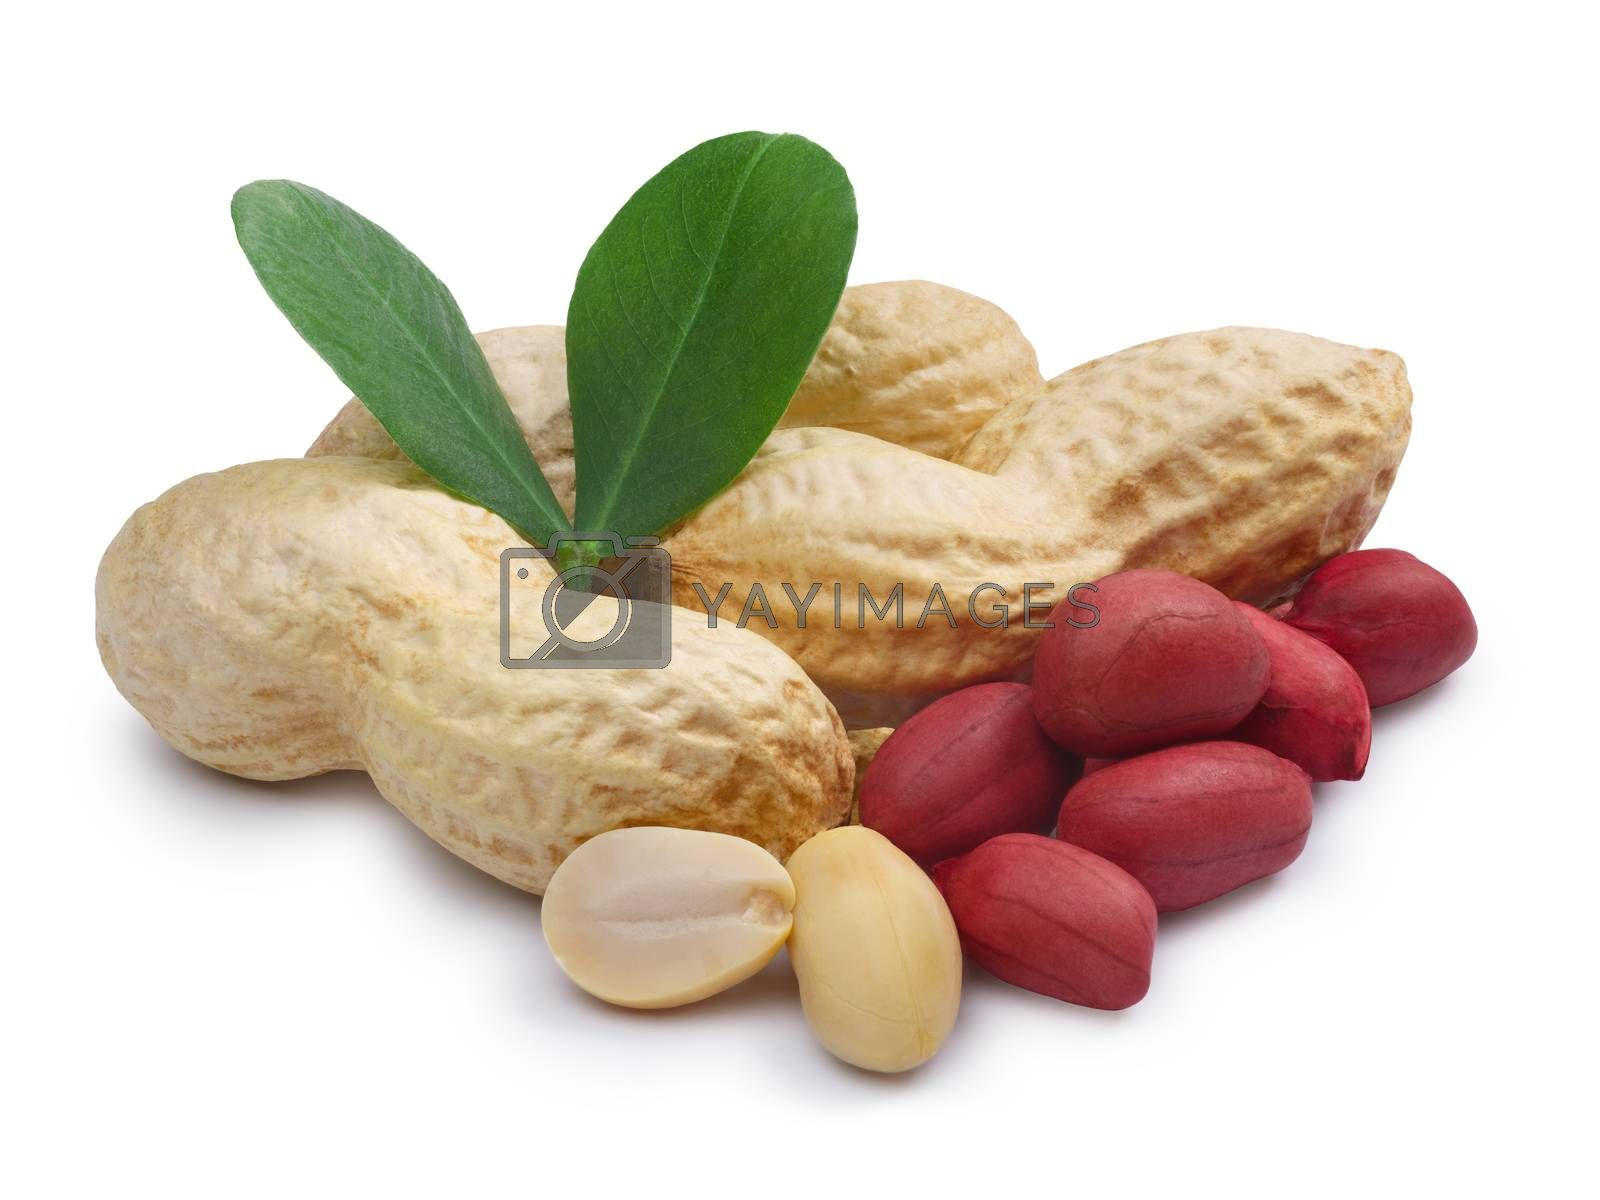 Heap of peanuts in shell, whole shelled, blanched, whole and split, roasted, with leaves. Clipping paths, infinite DOF